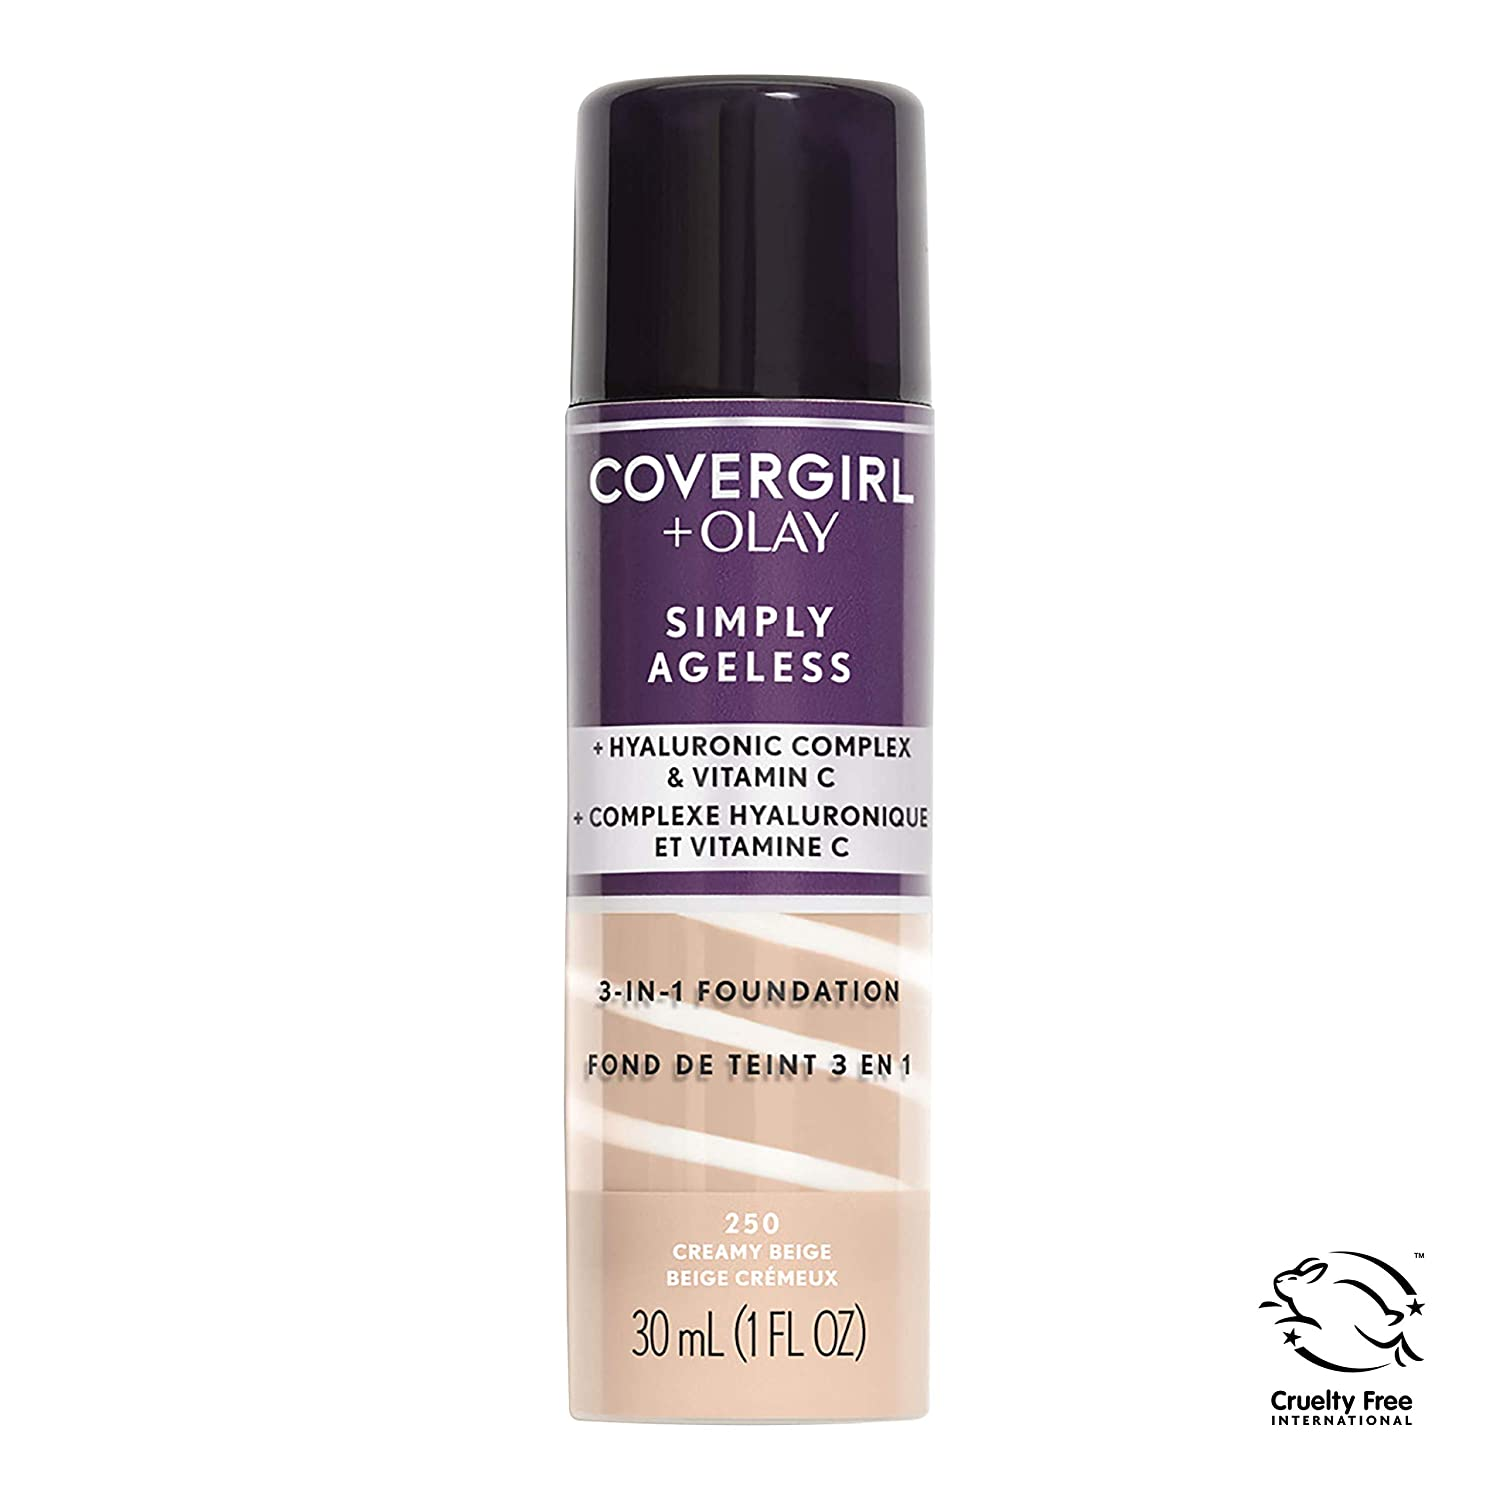 Covergirl & Olay Simply Ageless 3-in-1 Liquid Foundation, Creamy Beige